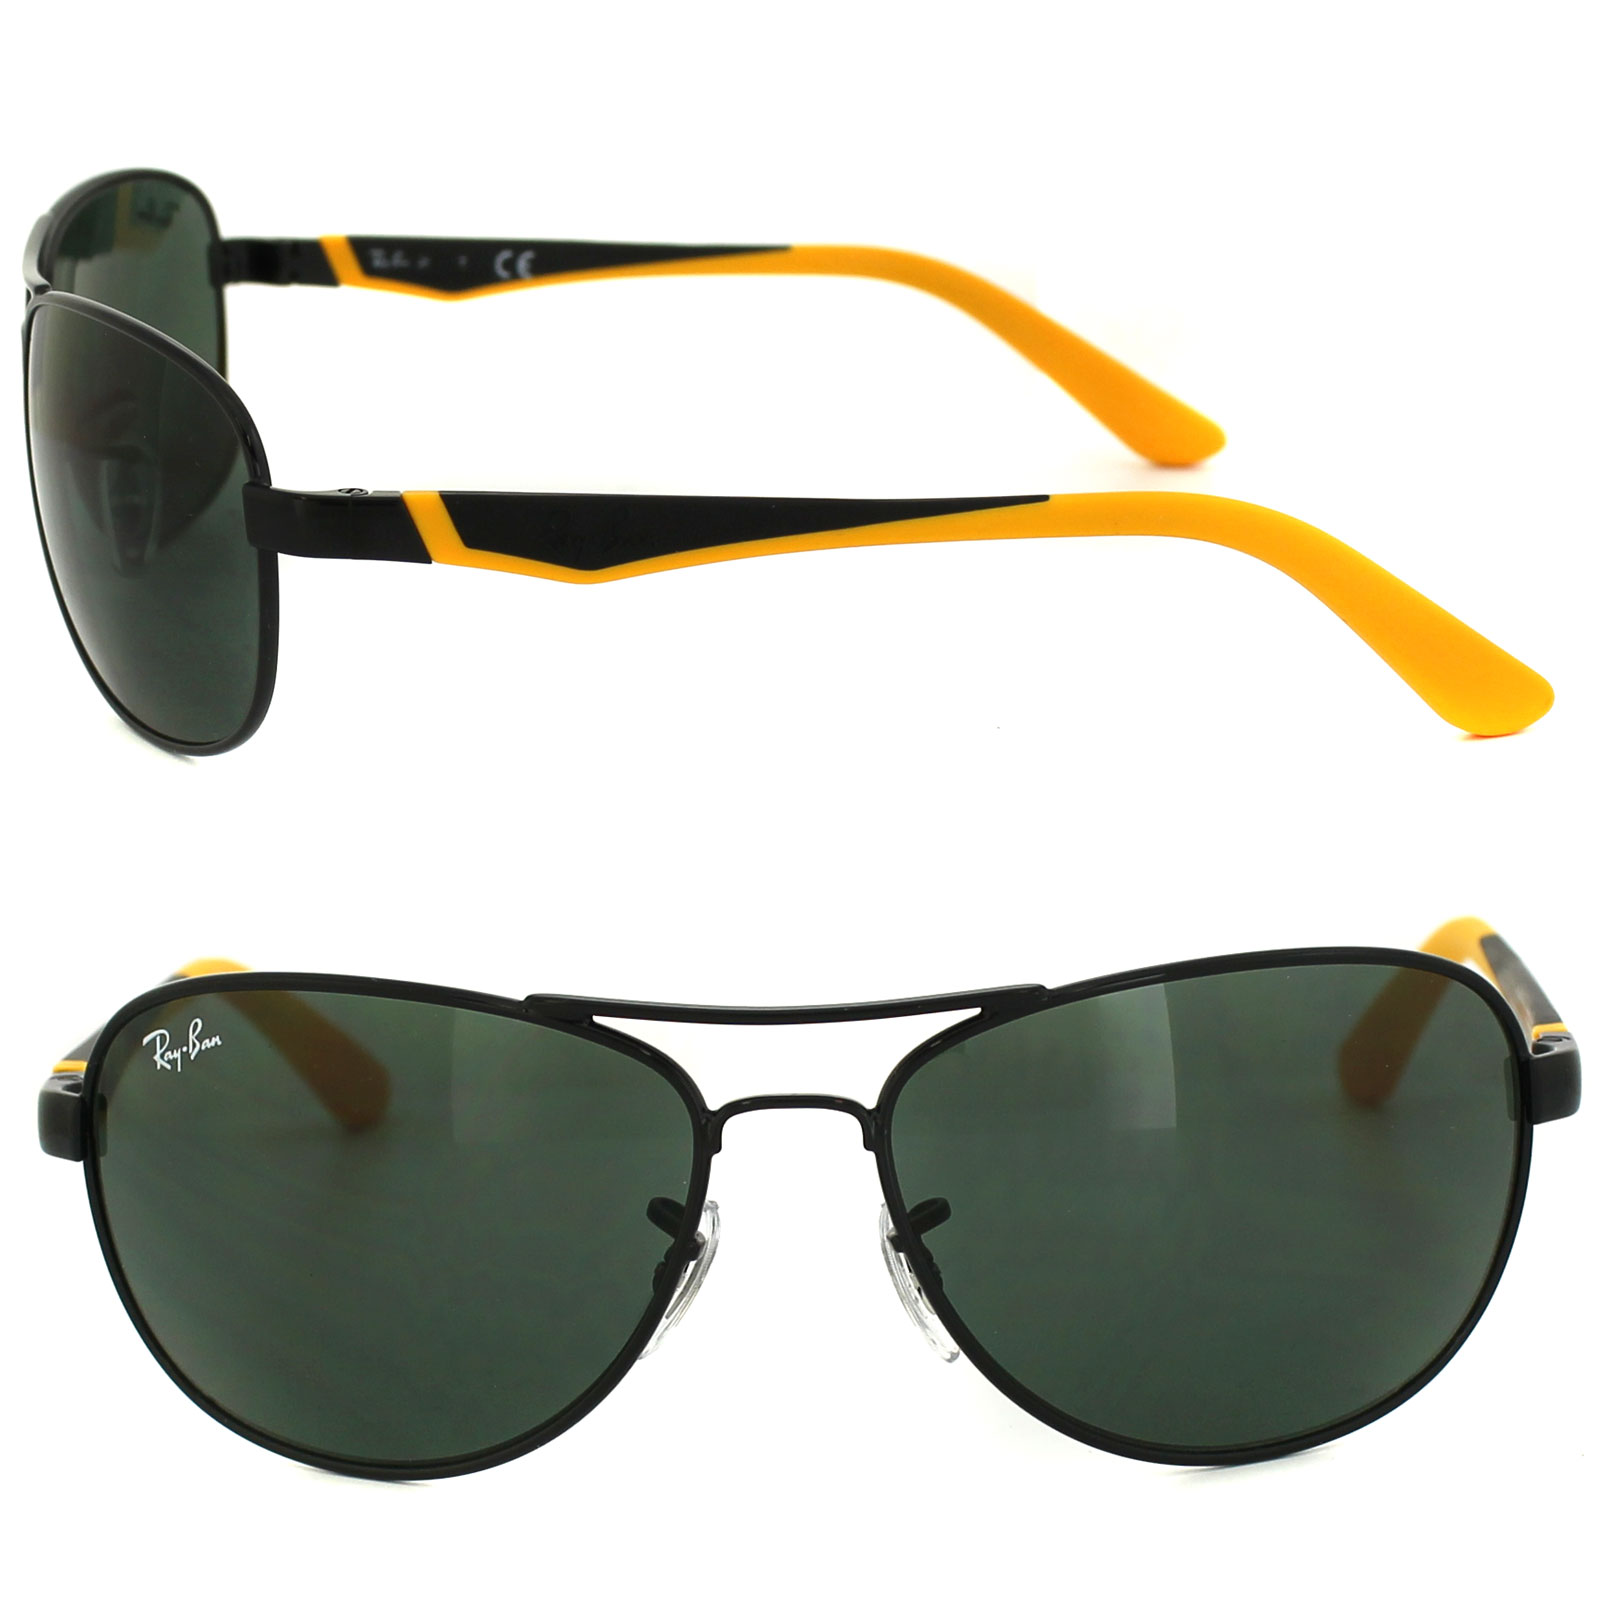 6a62b9cabcf Oakley Yellow Safety Glasses